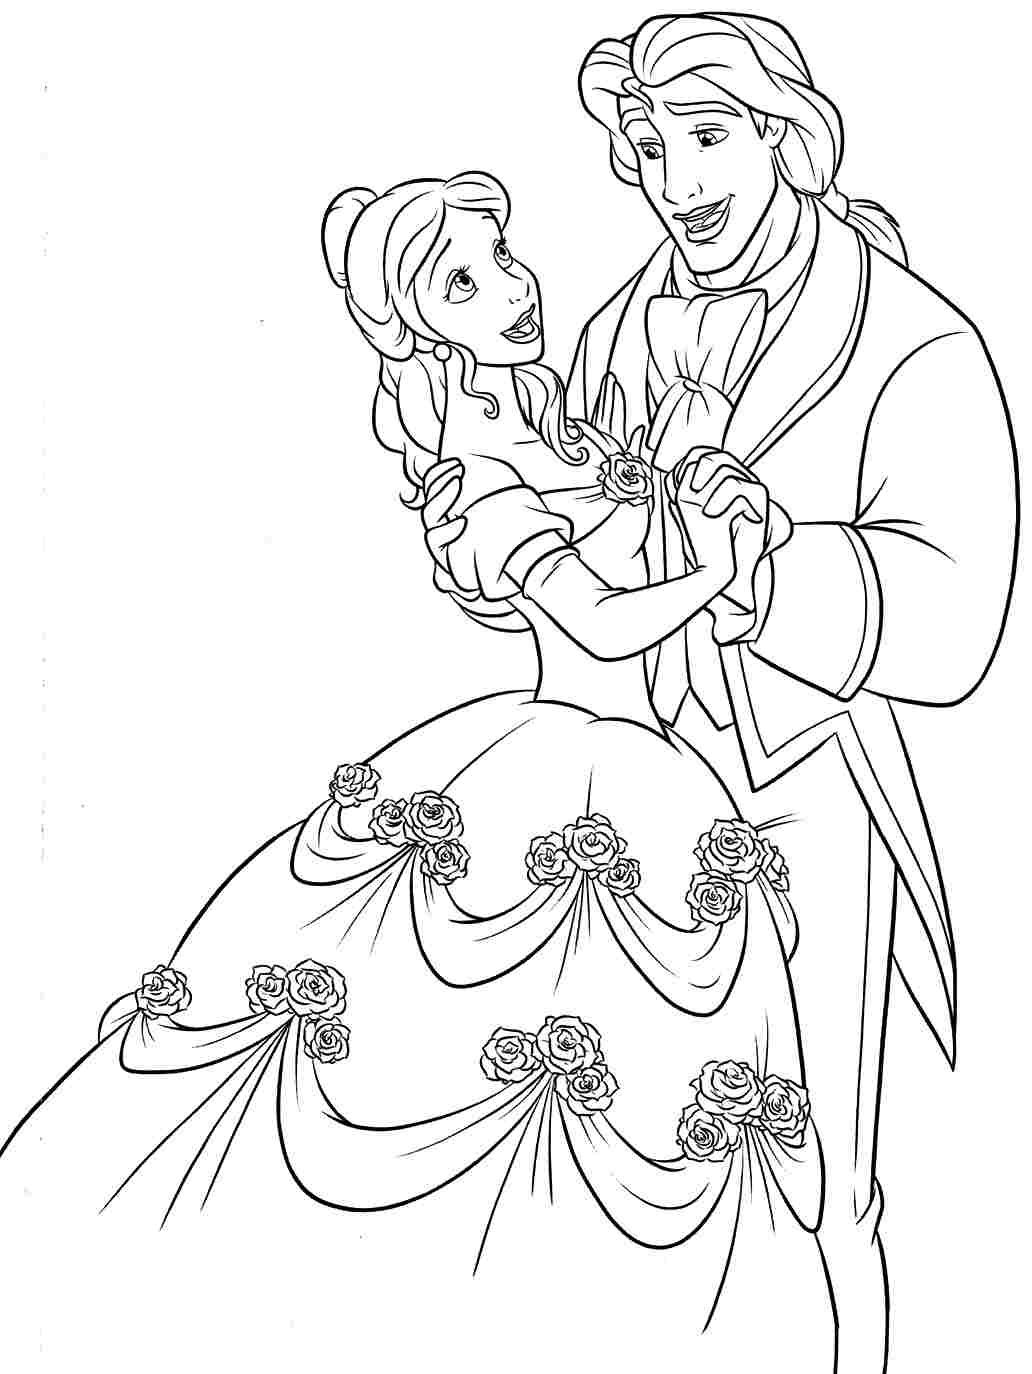 ariel and belle coloring pages belle ariel and cinderella coloring pages coloring home and coloring ariel pages belle